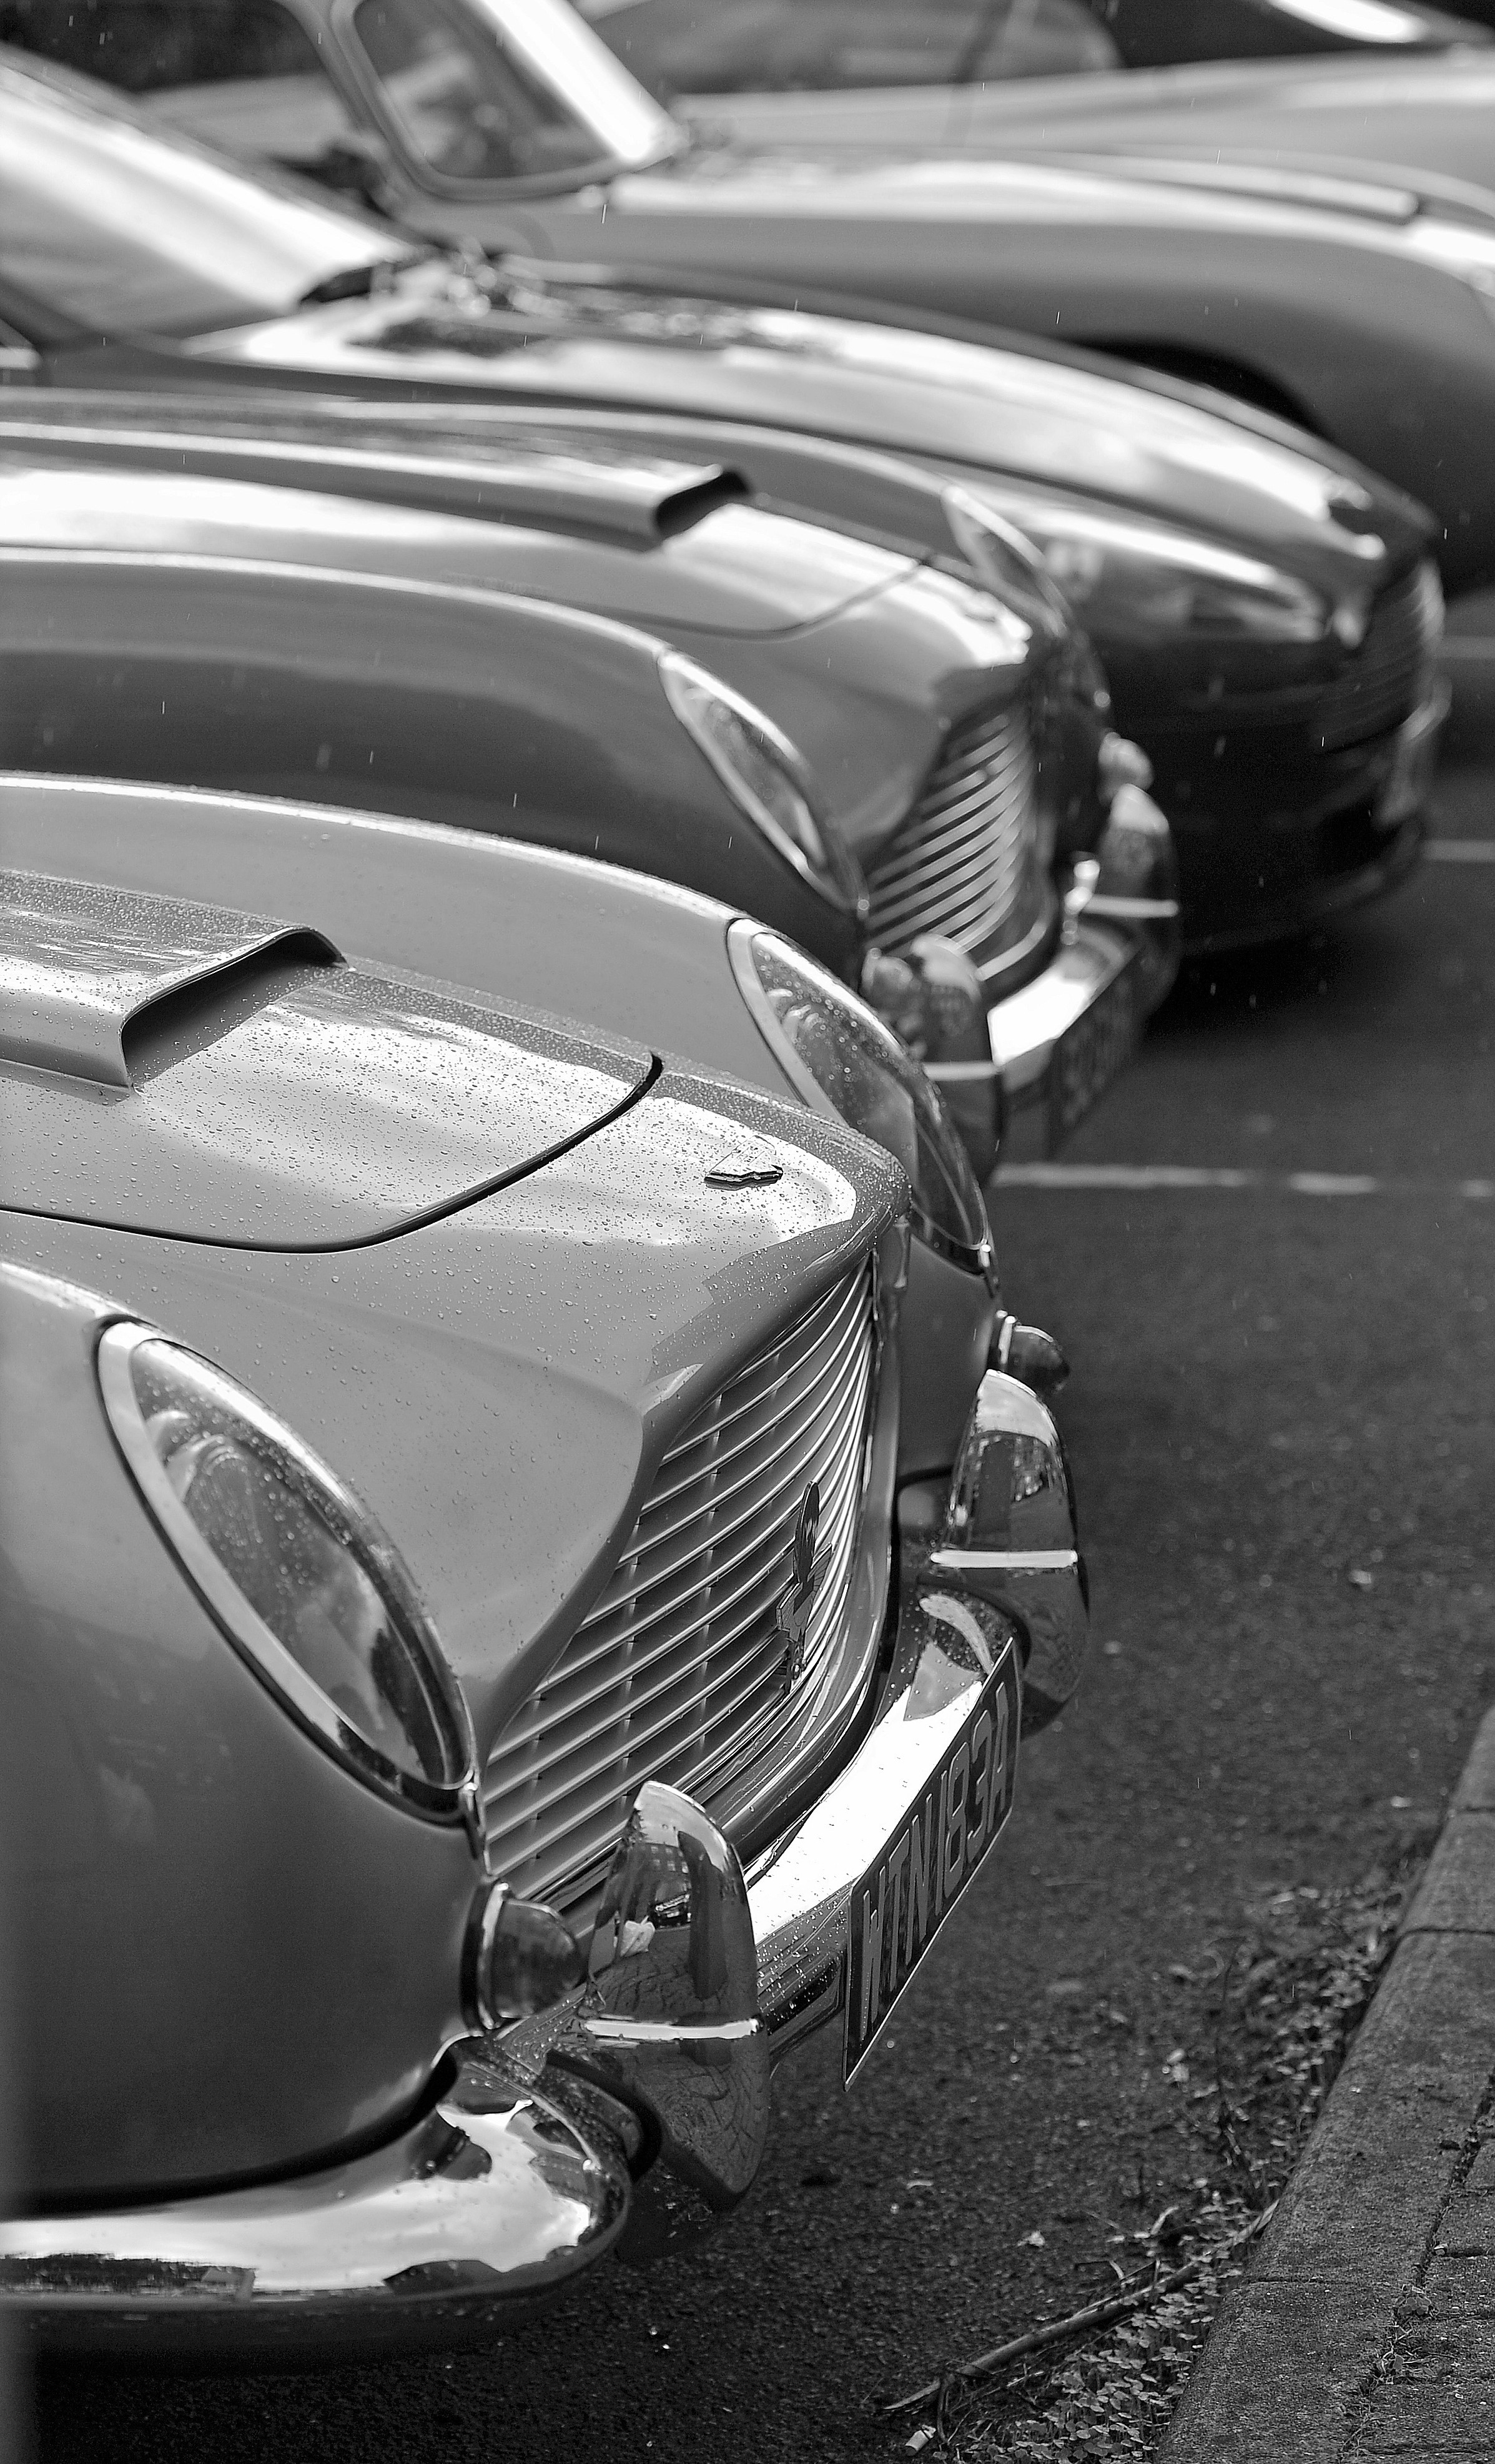 Classic collection of Aston Martins paraded through Farsley